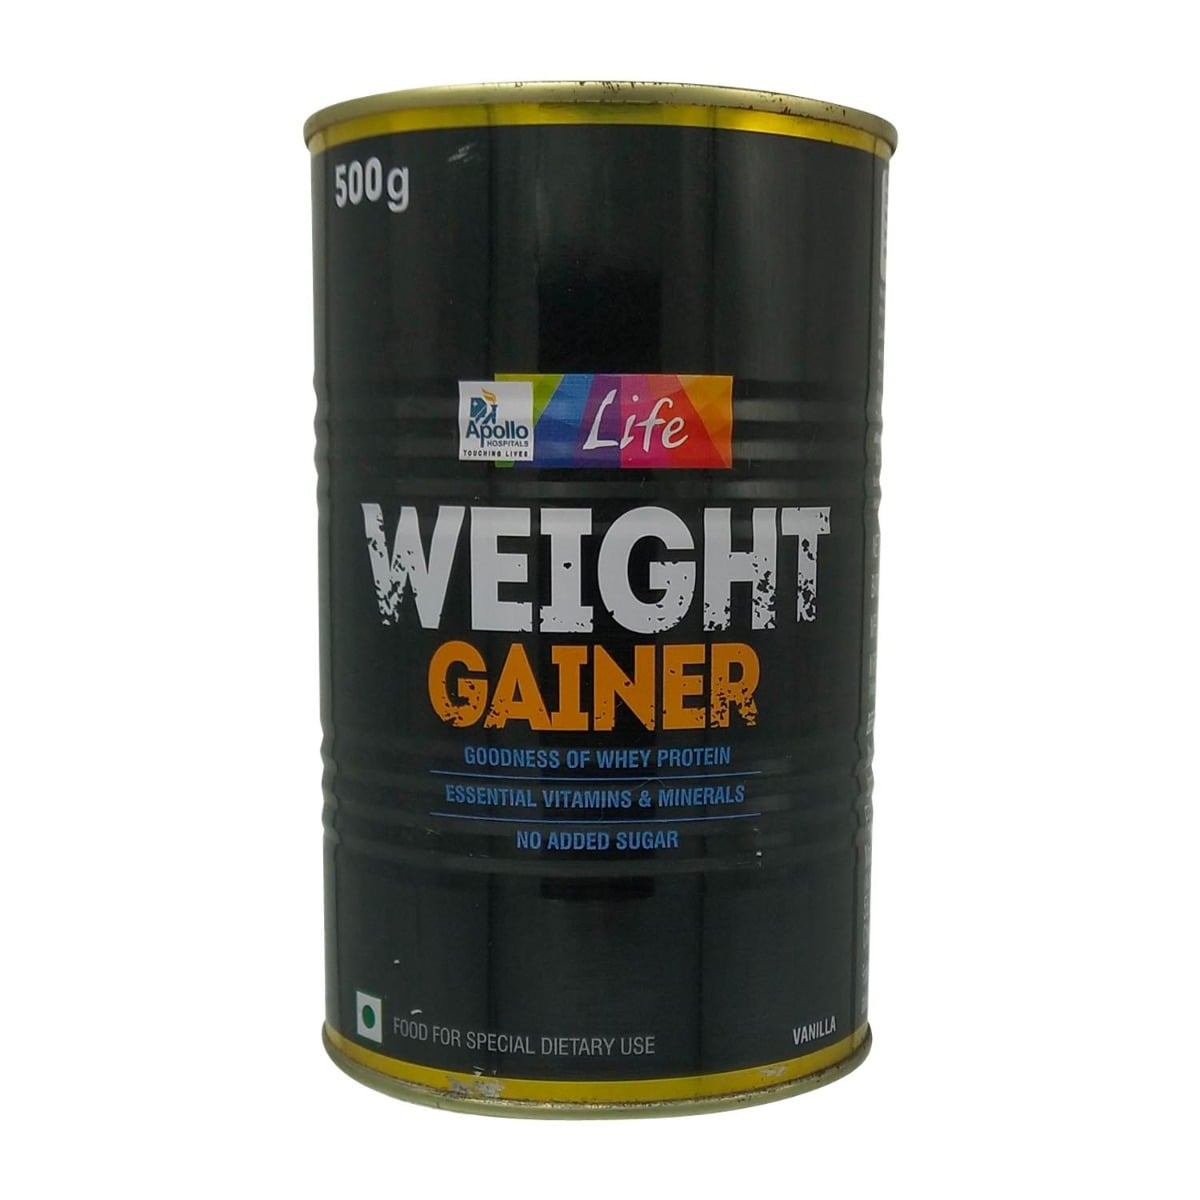 Apollo Life Vanilla Flavour Weight Gainer Powder, 500 gm Tin, Pack of 1